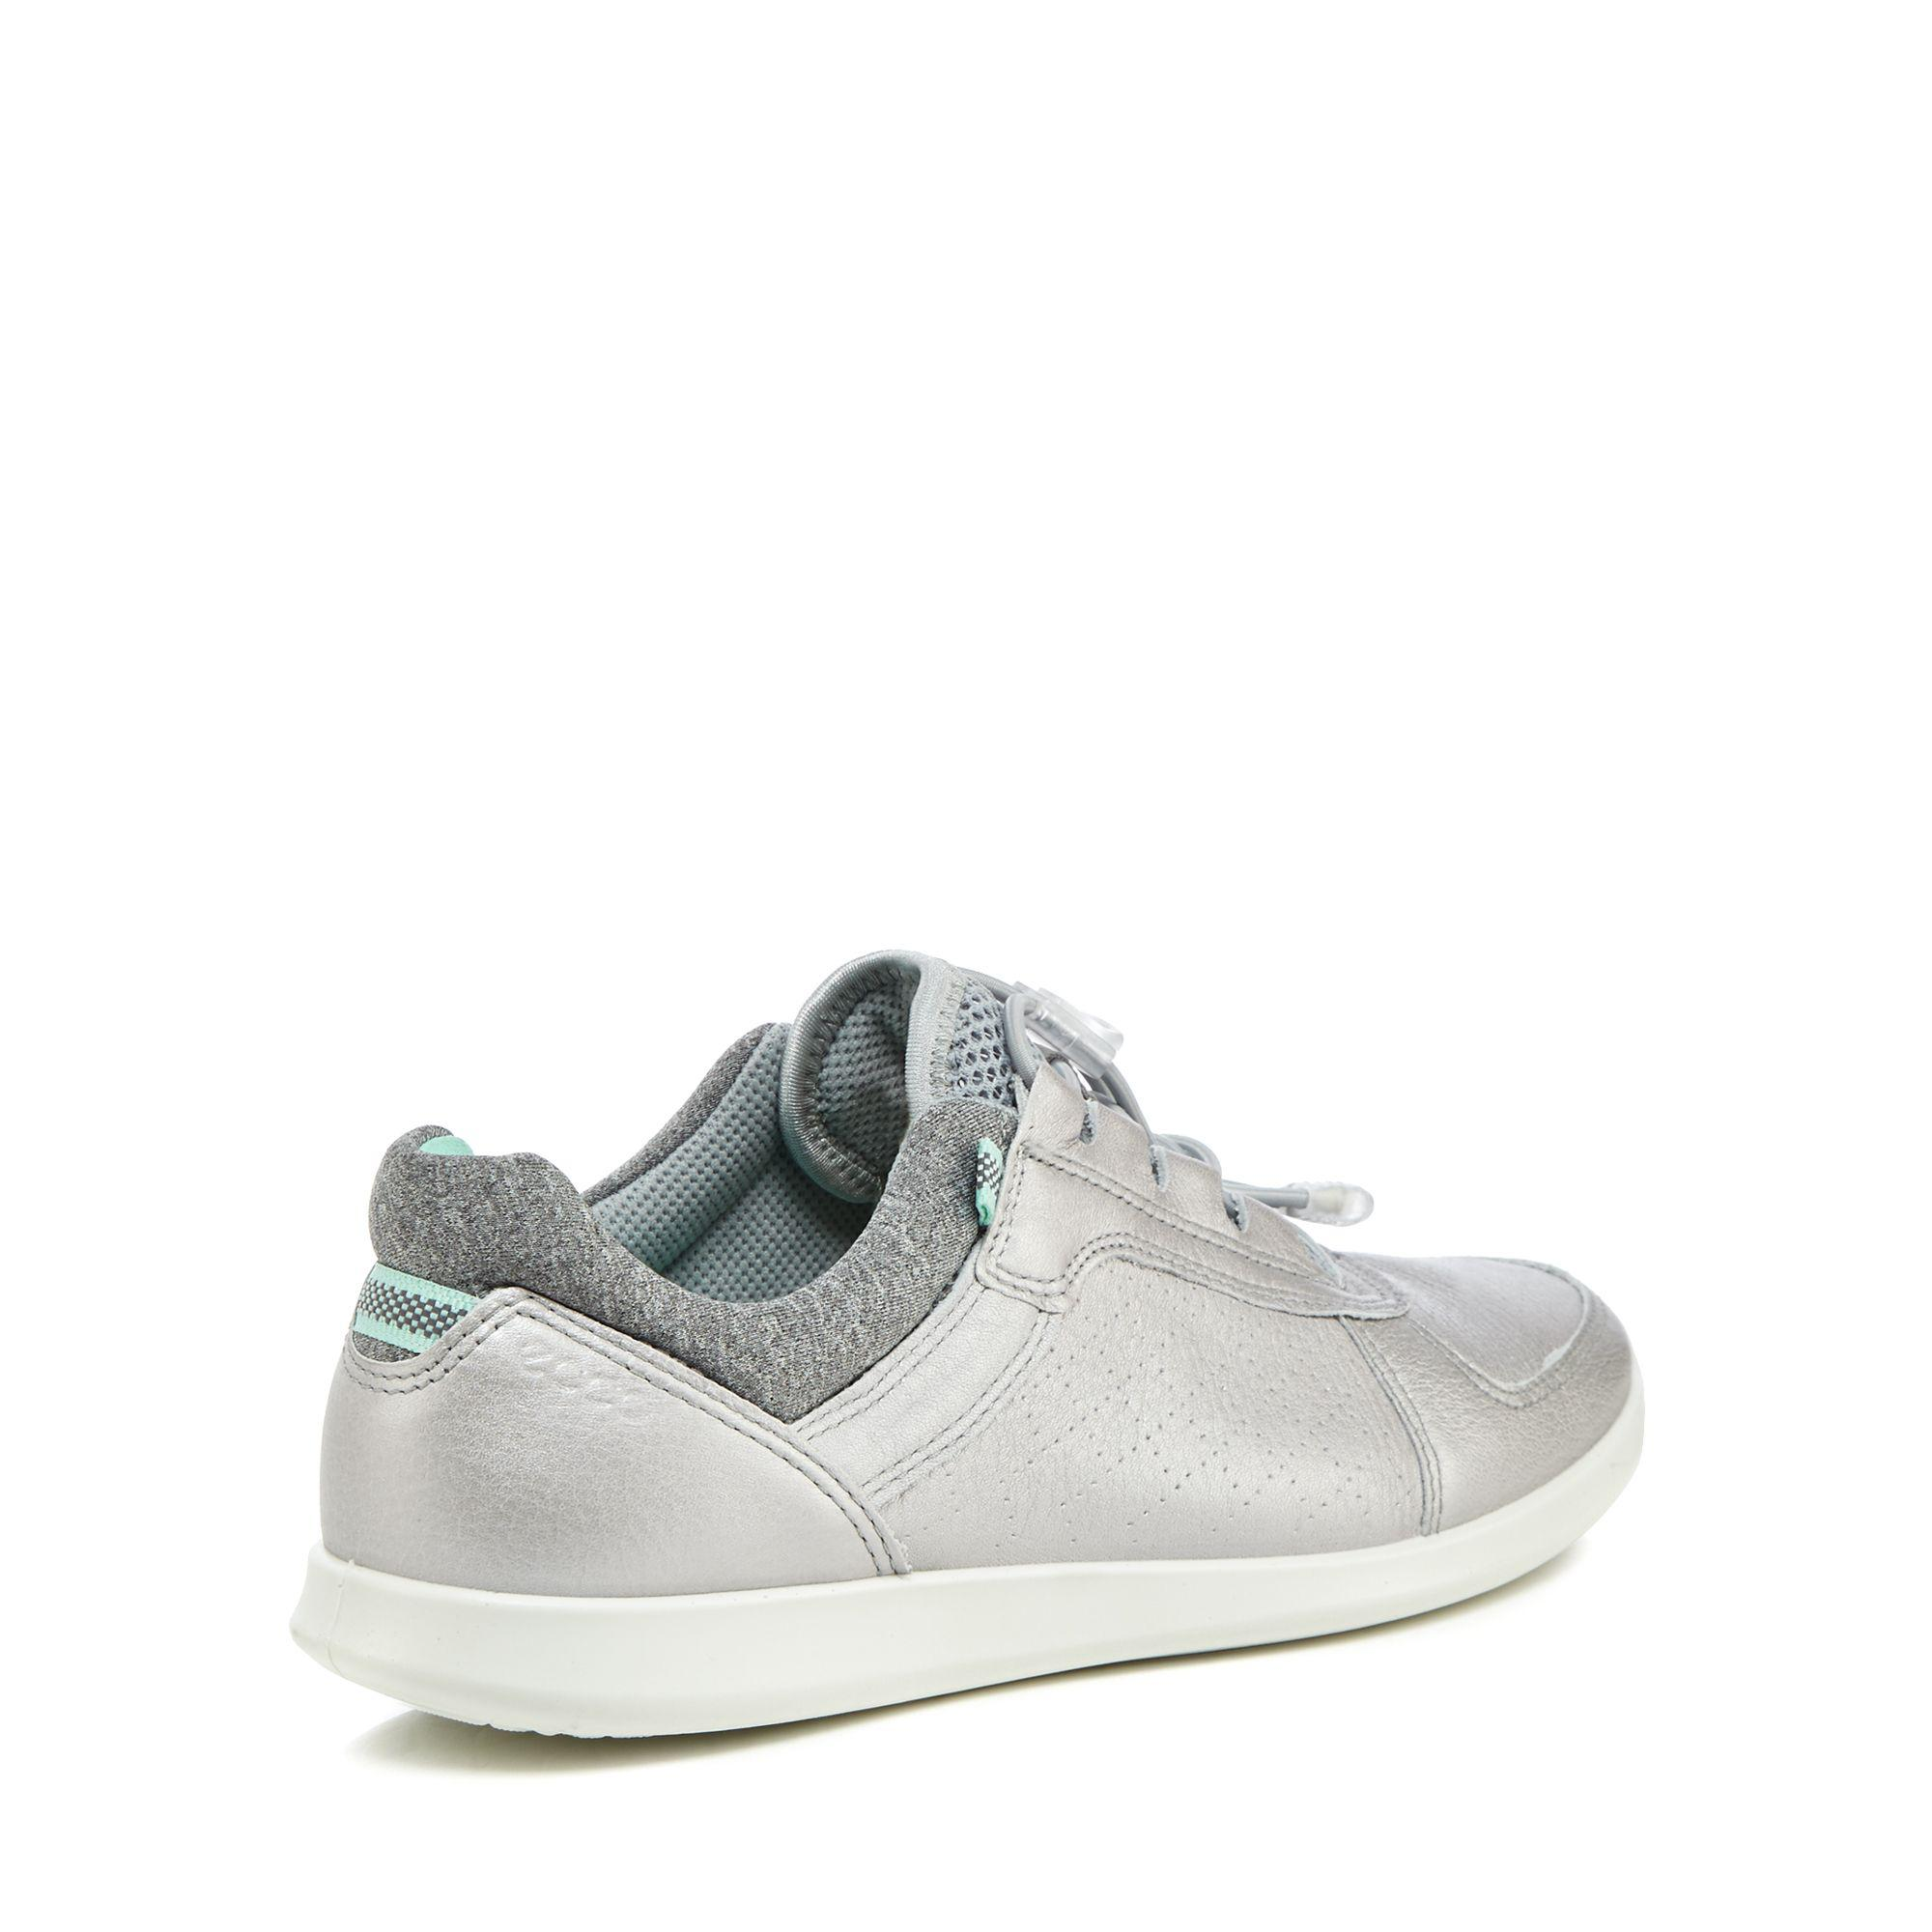 cheap ebay Silver 'Sense' trainers pick a best cheap price outlet many kinds of oGL2S